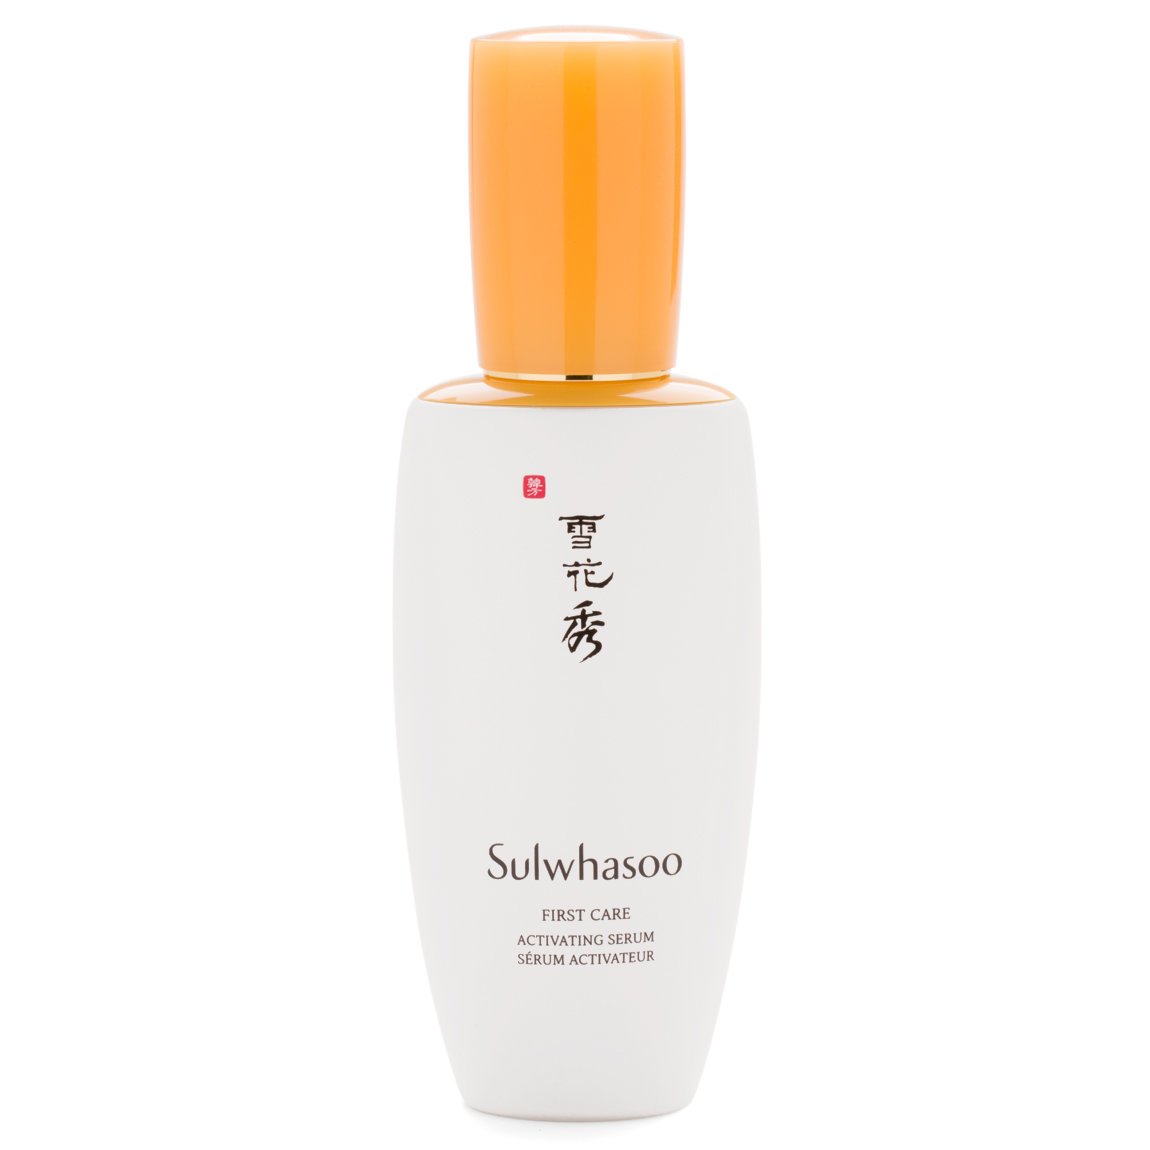 Sulwhasoo First Care Activating Serum Original (90 ml) product swatch.